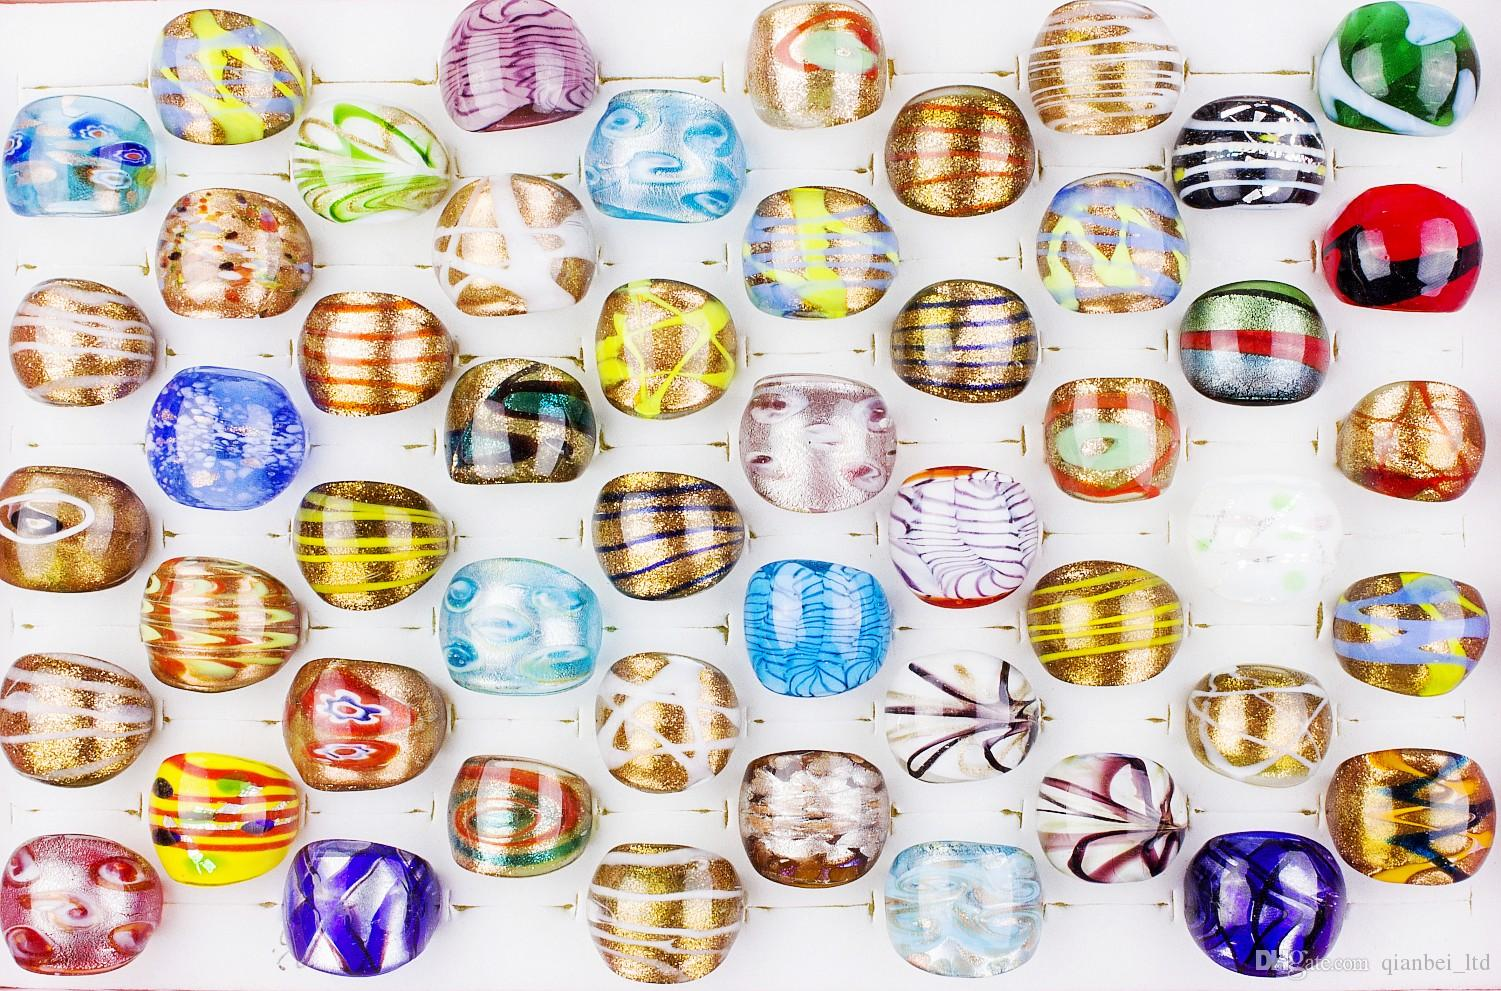 Wholesale 1200Pcs Summer Style Gold Sand Murano Glass Lampwork Bands Ring Birthday Men Women Wedding Party Valentine Gift DHL SHIPPING FREE